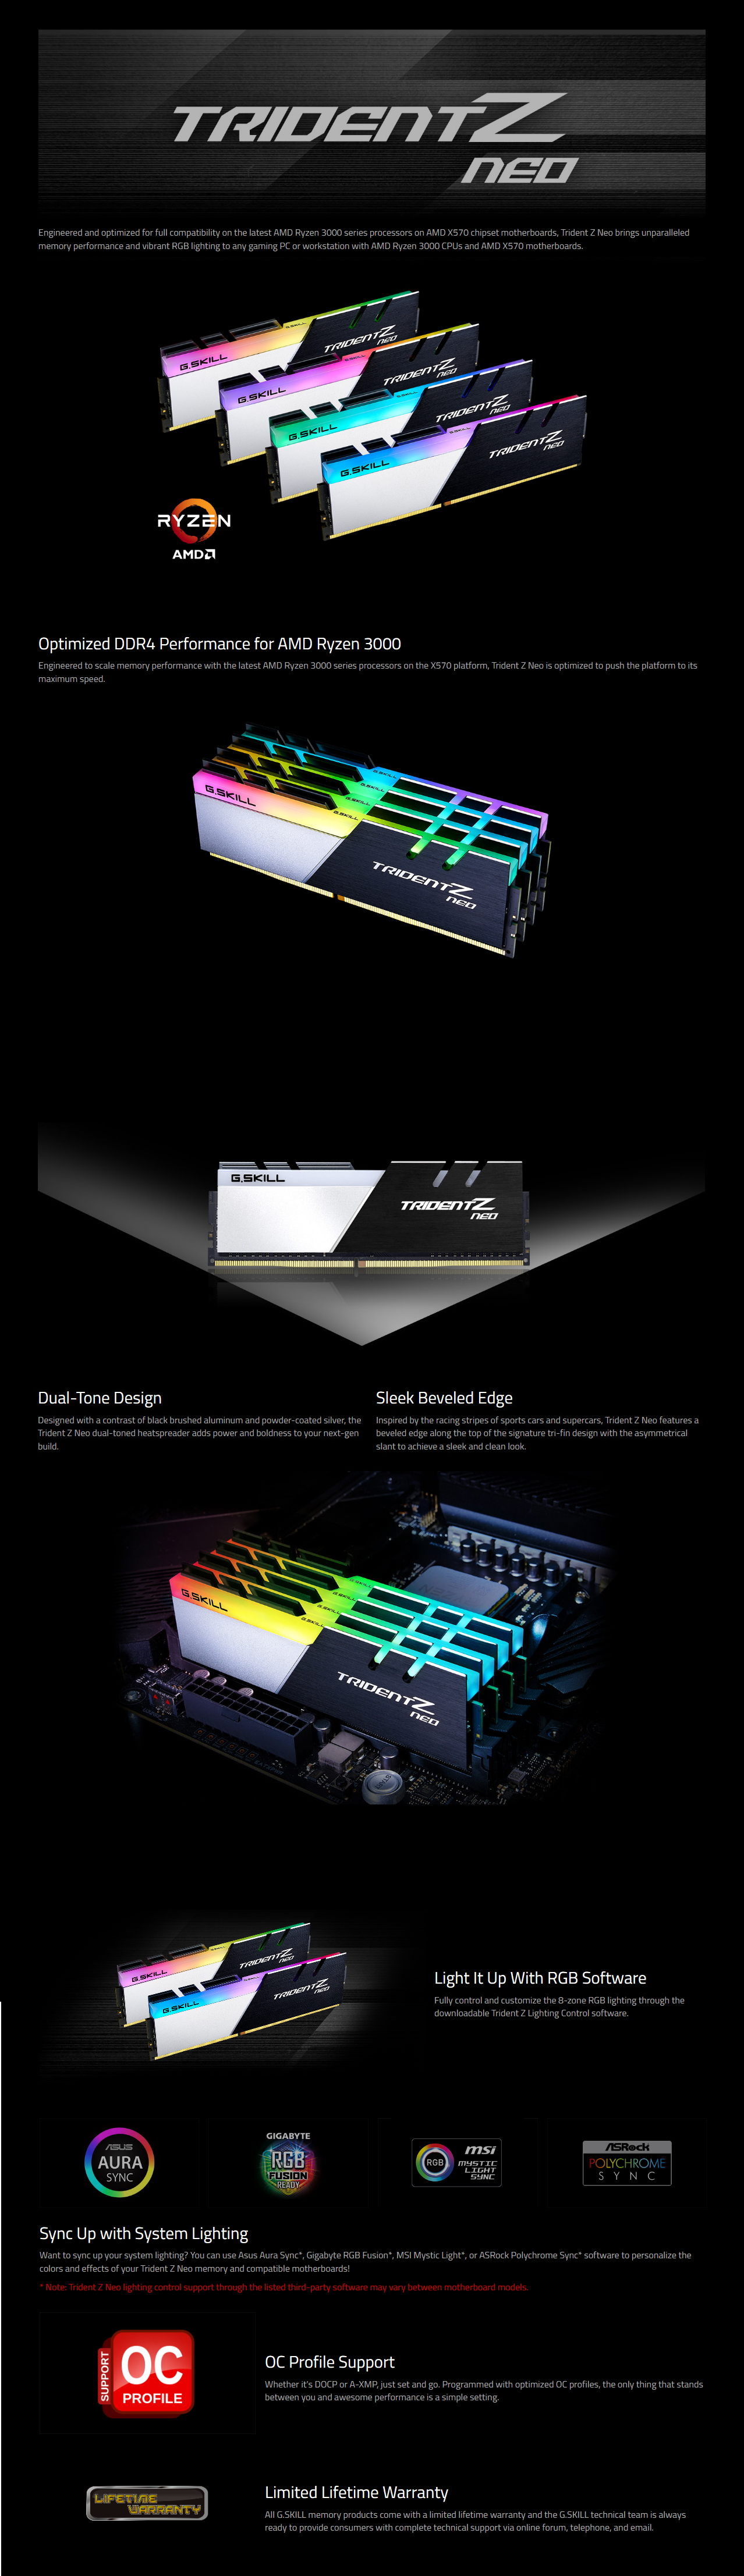 A large marketing image providing additional information about the product G.Skill 16GB Kit (2x8GB) DDR4 Trident Z RGB Neo C16 3200Mhz - Additional alt info not provided